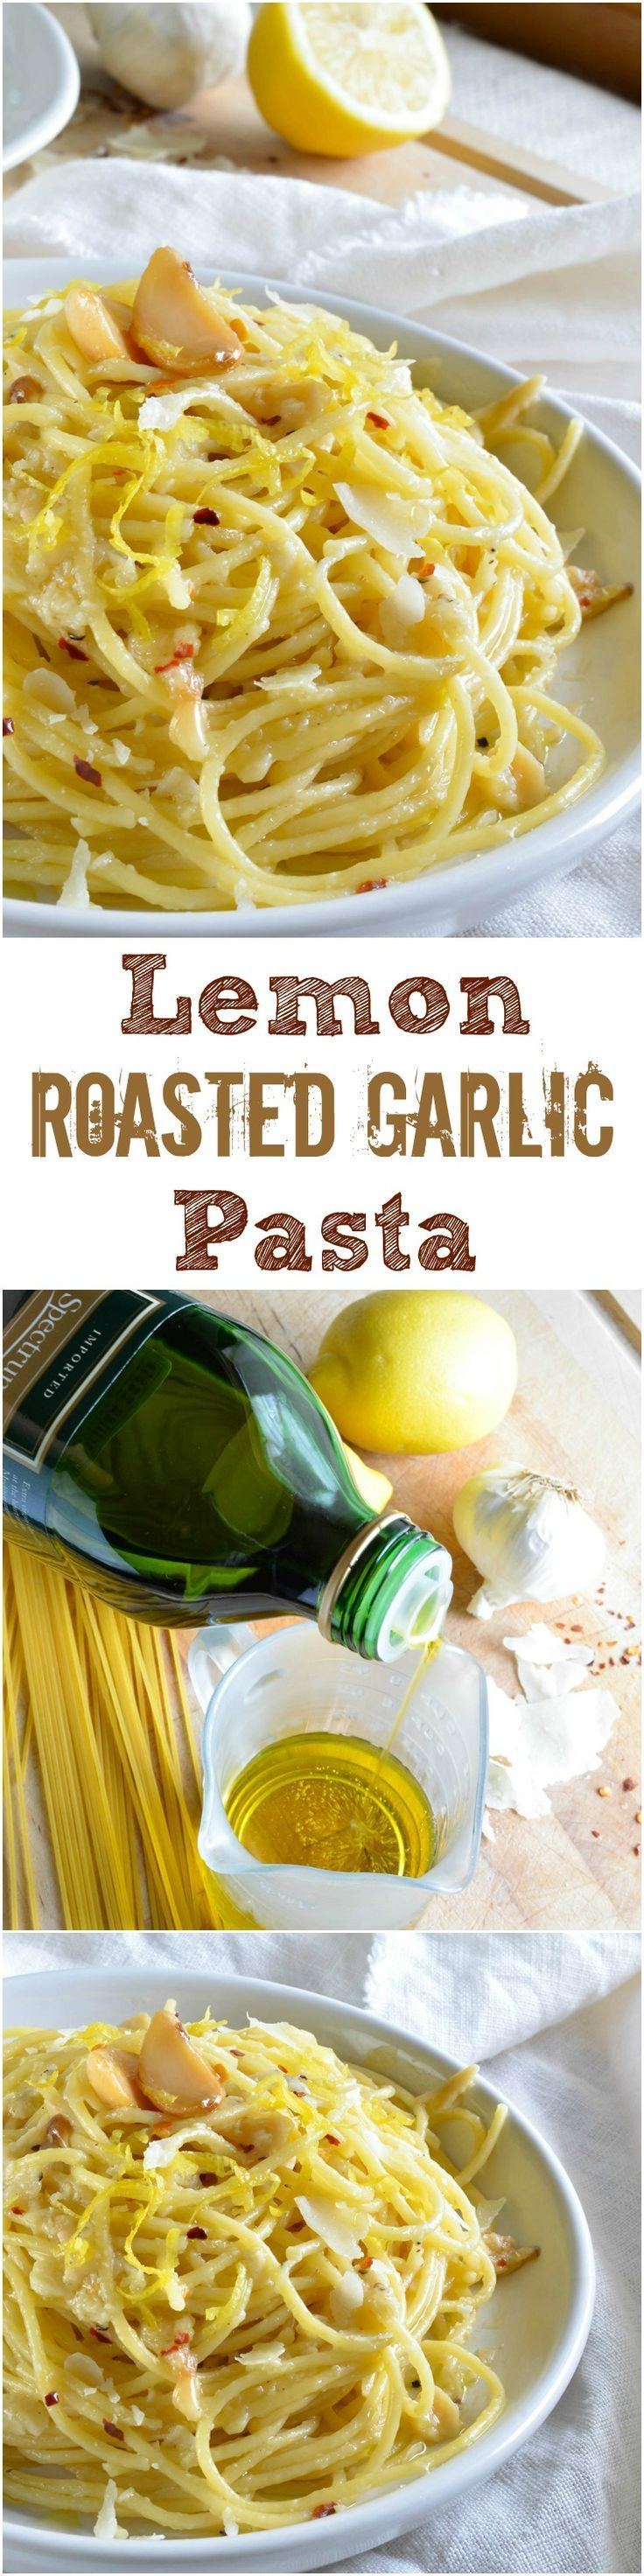 Lemon Garlic Pasta Recipe - A simple dinner idea or filling side dish.  Pasta tossed with lemon, premium olive oil, red pepper flakes, parmesan cheese and roasted garlic. #pasta #dinner wonkywonderful.com